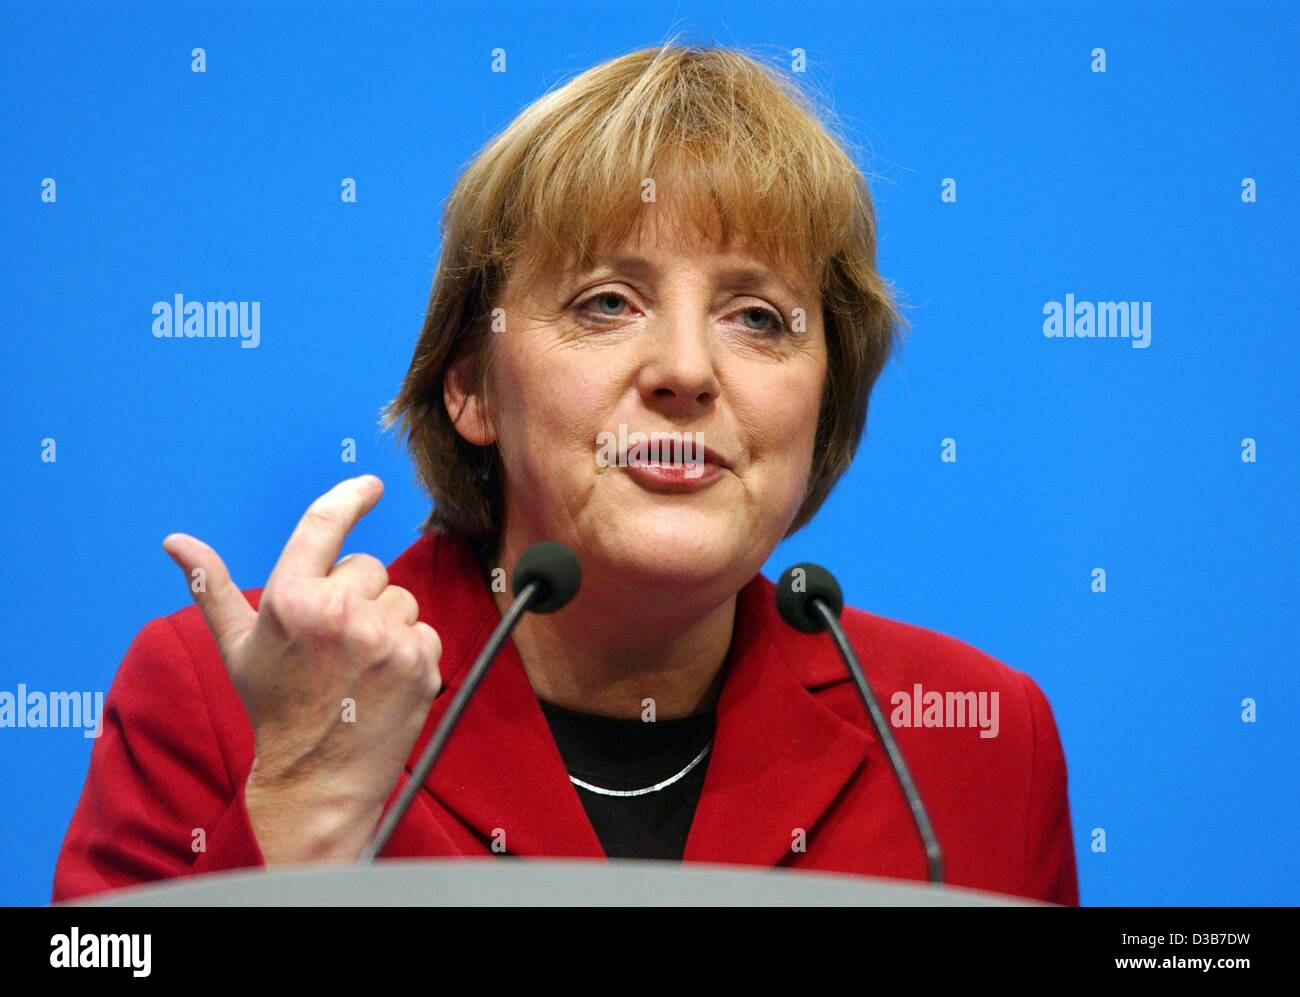 (dpa) - CDU Chairwoman Angela Merkel speaks during the CSU party convention in Munich, 22 November 2002. Under the motto 'Verlaessliche Politik - Stabilitaet fuer unser Land!' (reliable politics - stability for our country!) the CDU/CSU party defined their tasks as opposition party. Stock Photo